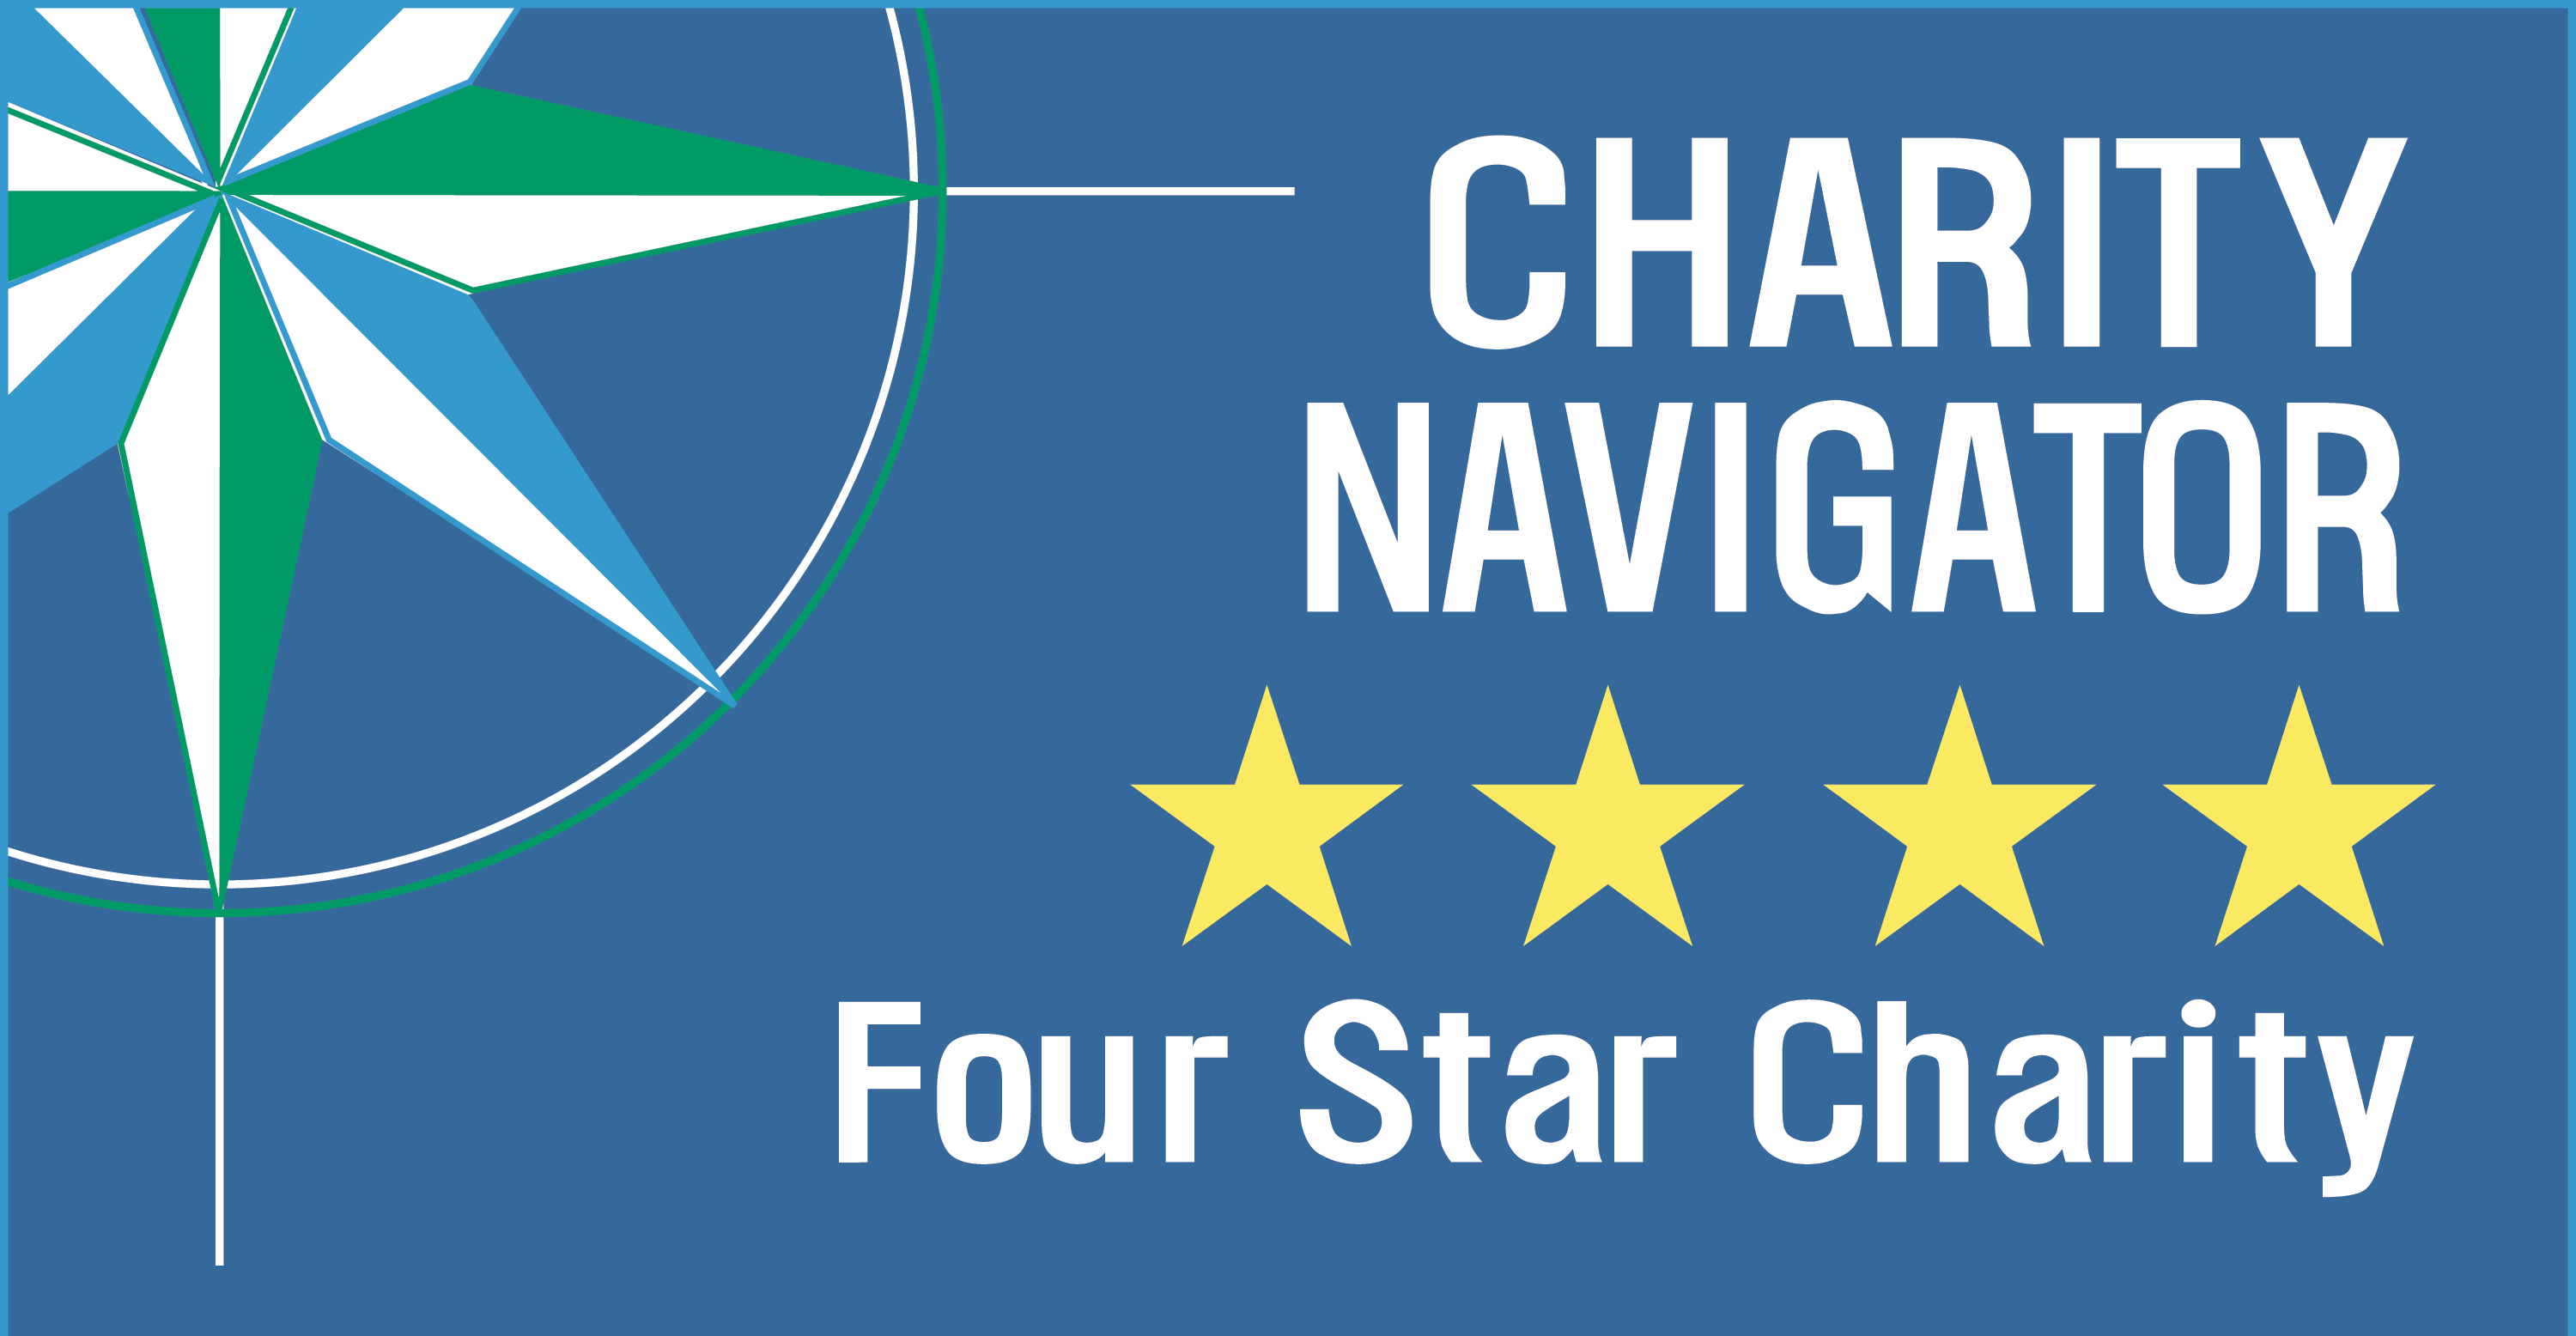 Doorways Awarded 10th Top Rating in Ten Years from Charity Navigator